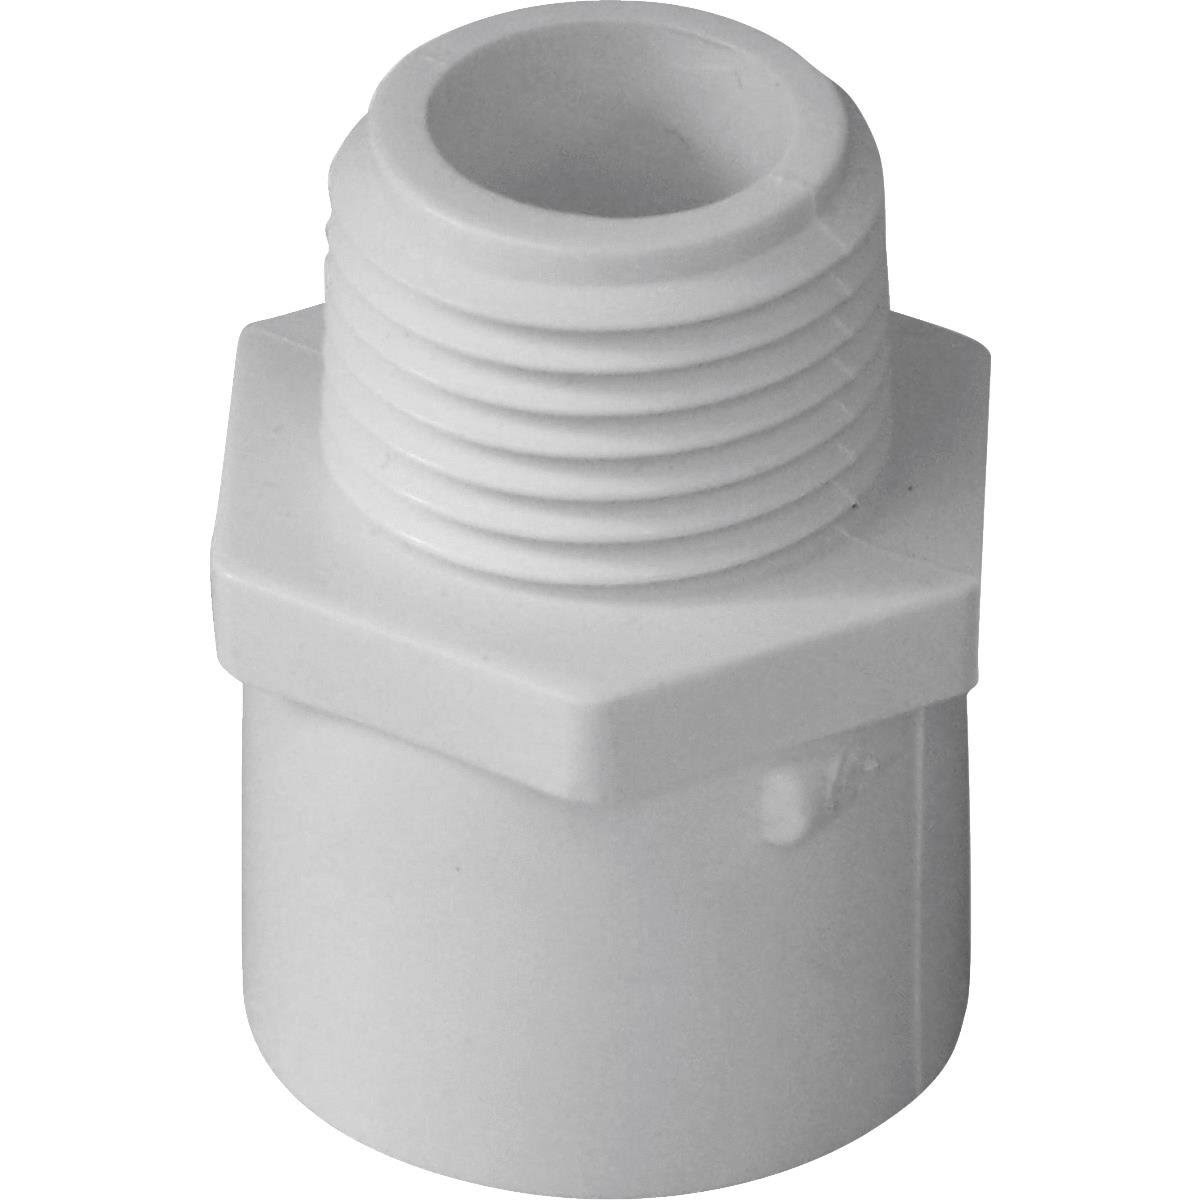 Genova Male Adapter Pressure Fitting